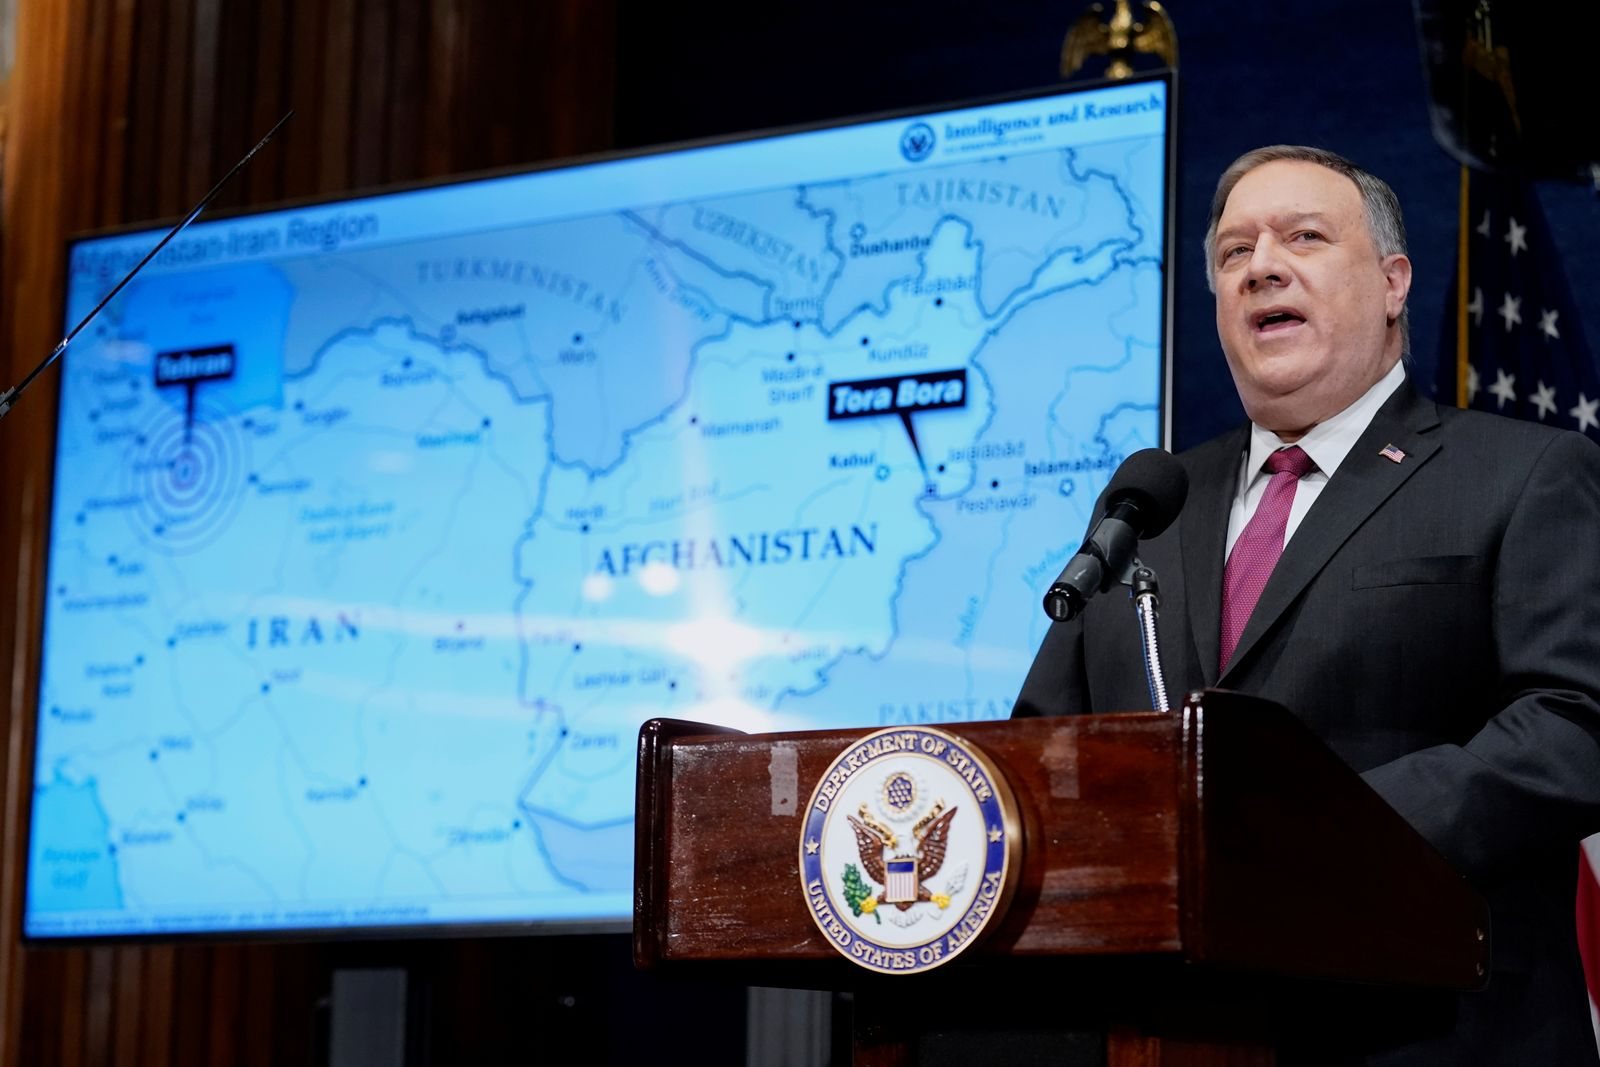 U.S. Secretary of State Pompeo delivers remarks at National Press Club